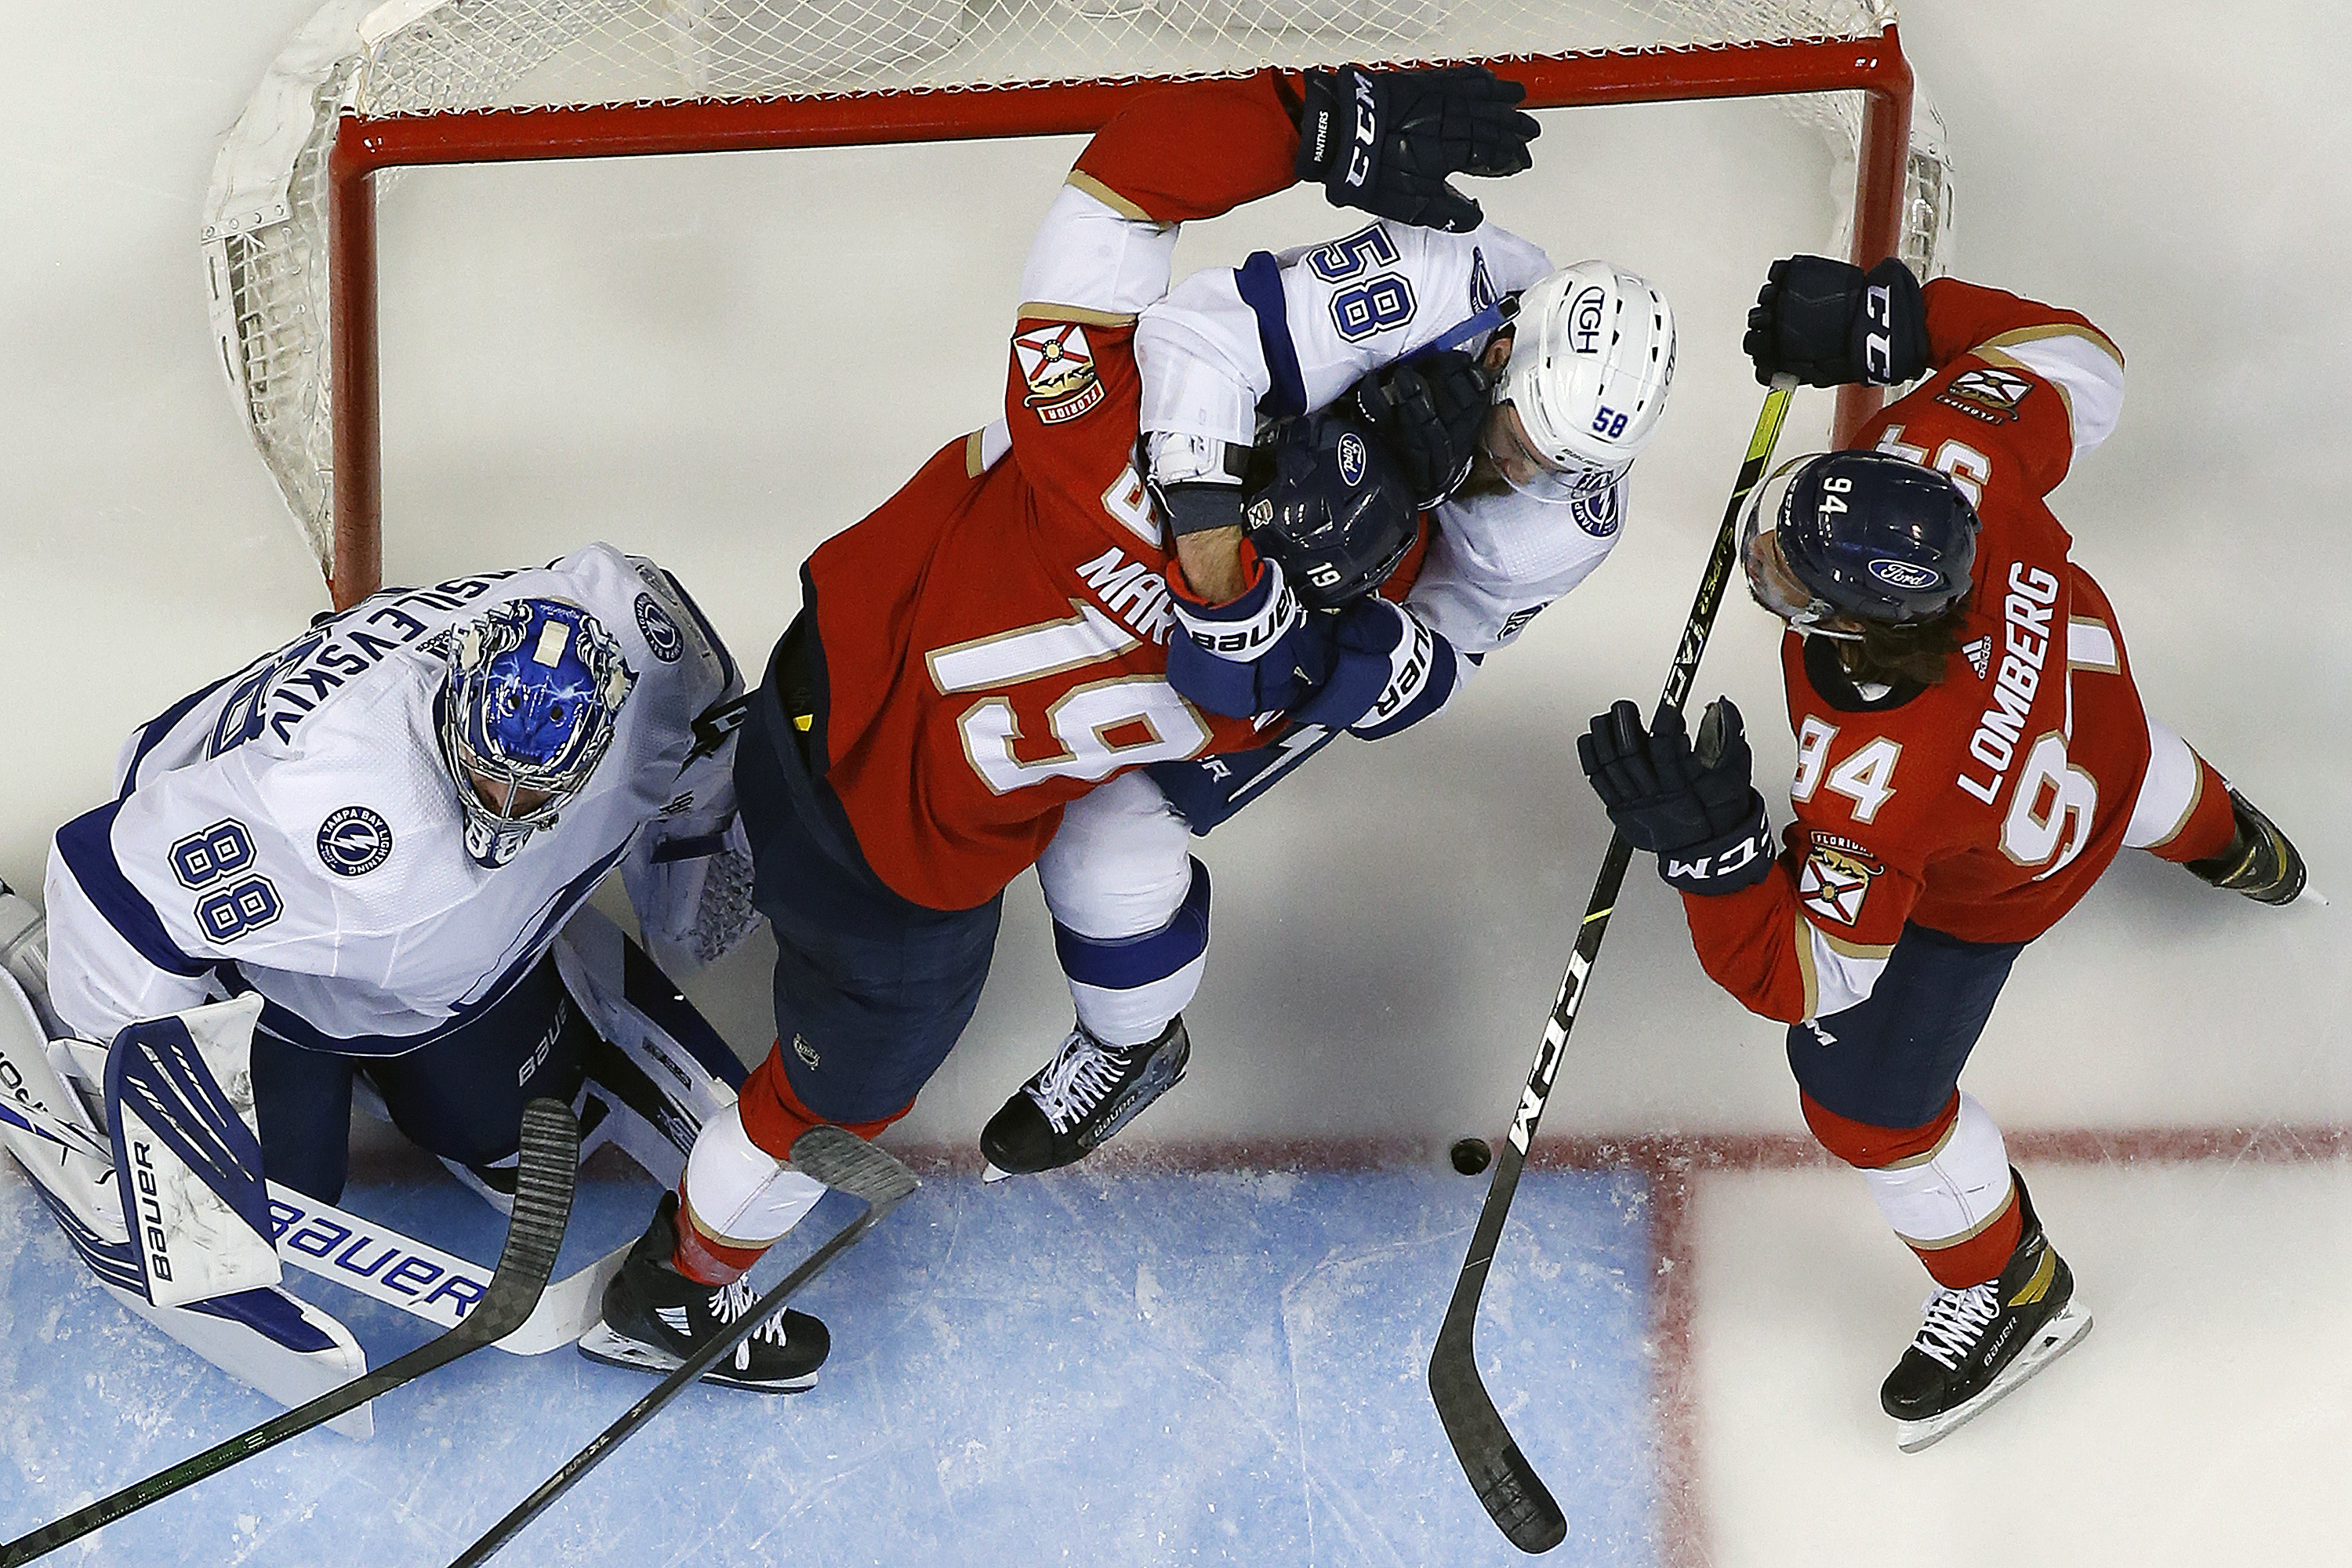 Goaltender Andrei Vasilevskly #88 and David Savard #58 of the Tampa Bay Lightning defend the net against Mason Marchment #19 of the Florida Panthers in Game One of the First Round of the 2021 Stanley Cup Playoffs at the BB&T Center on May 16, 2021 in Sunrise, Florida.